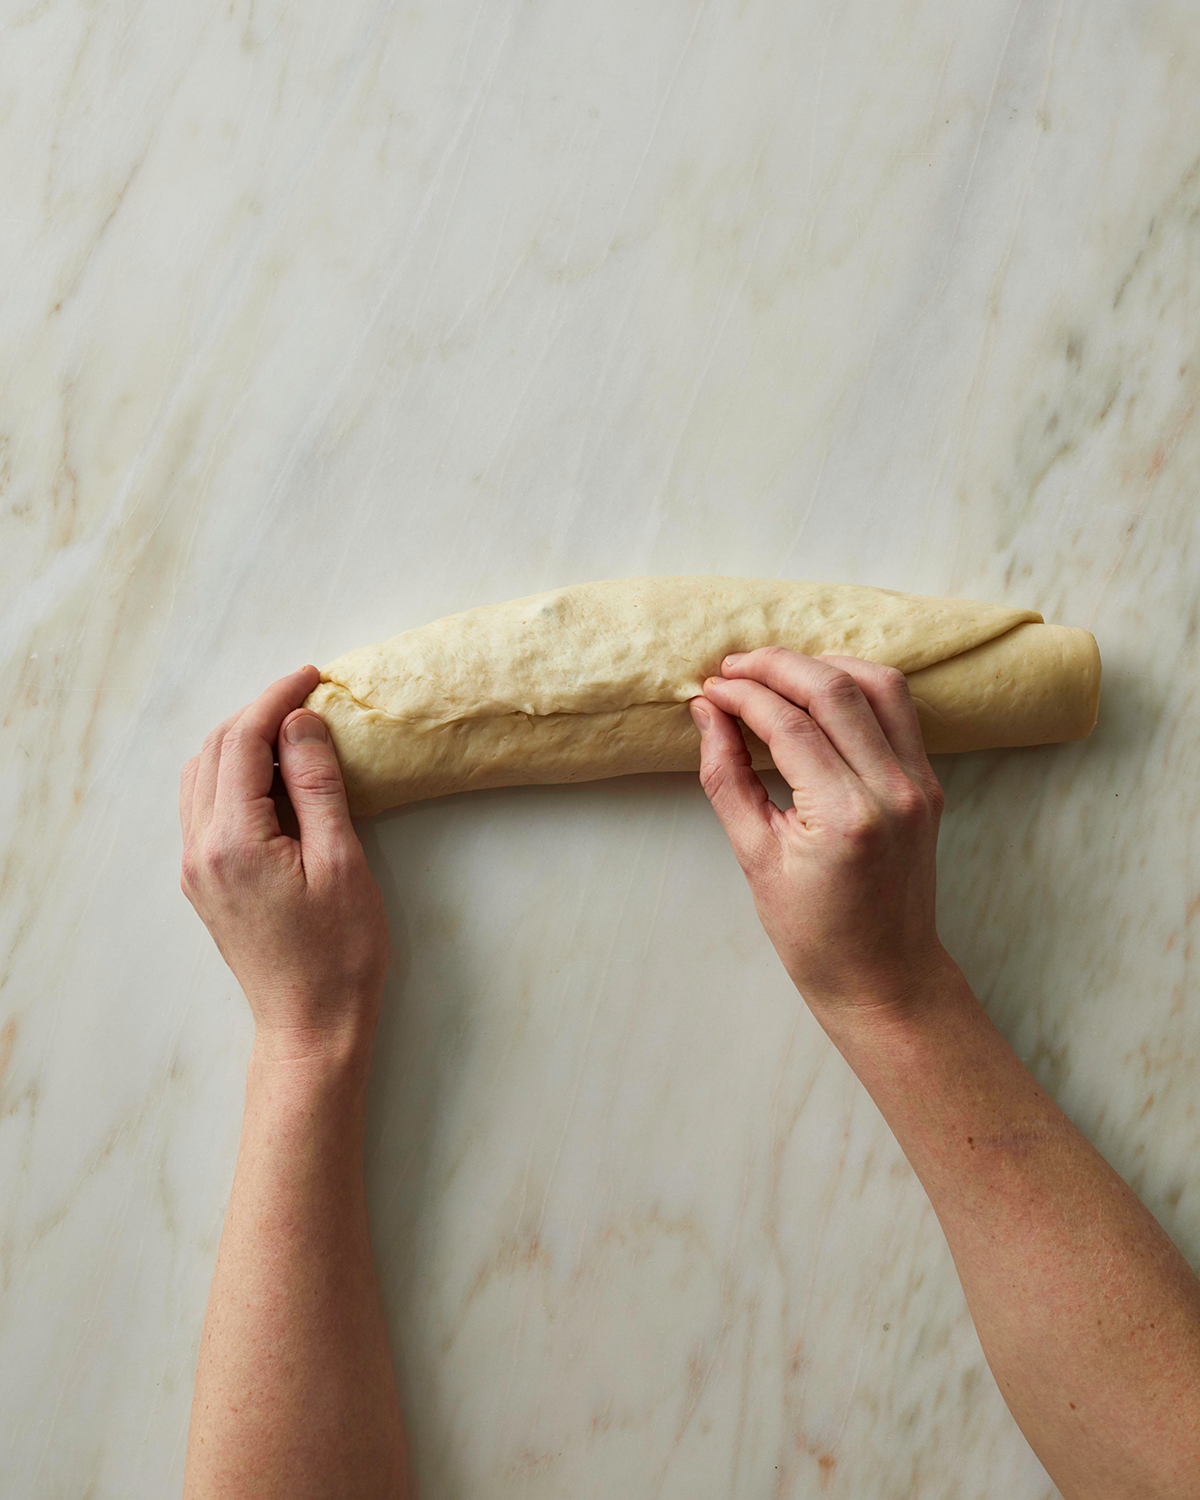 Pinching the seam on rolled swirl bread dough